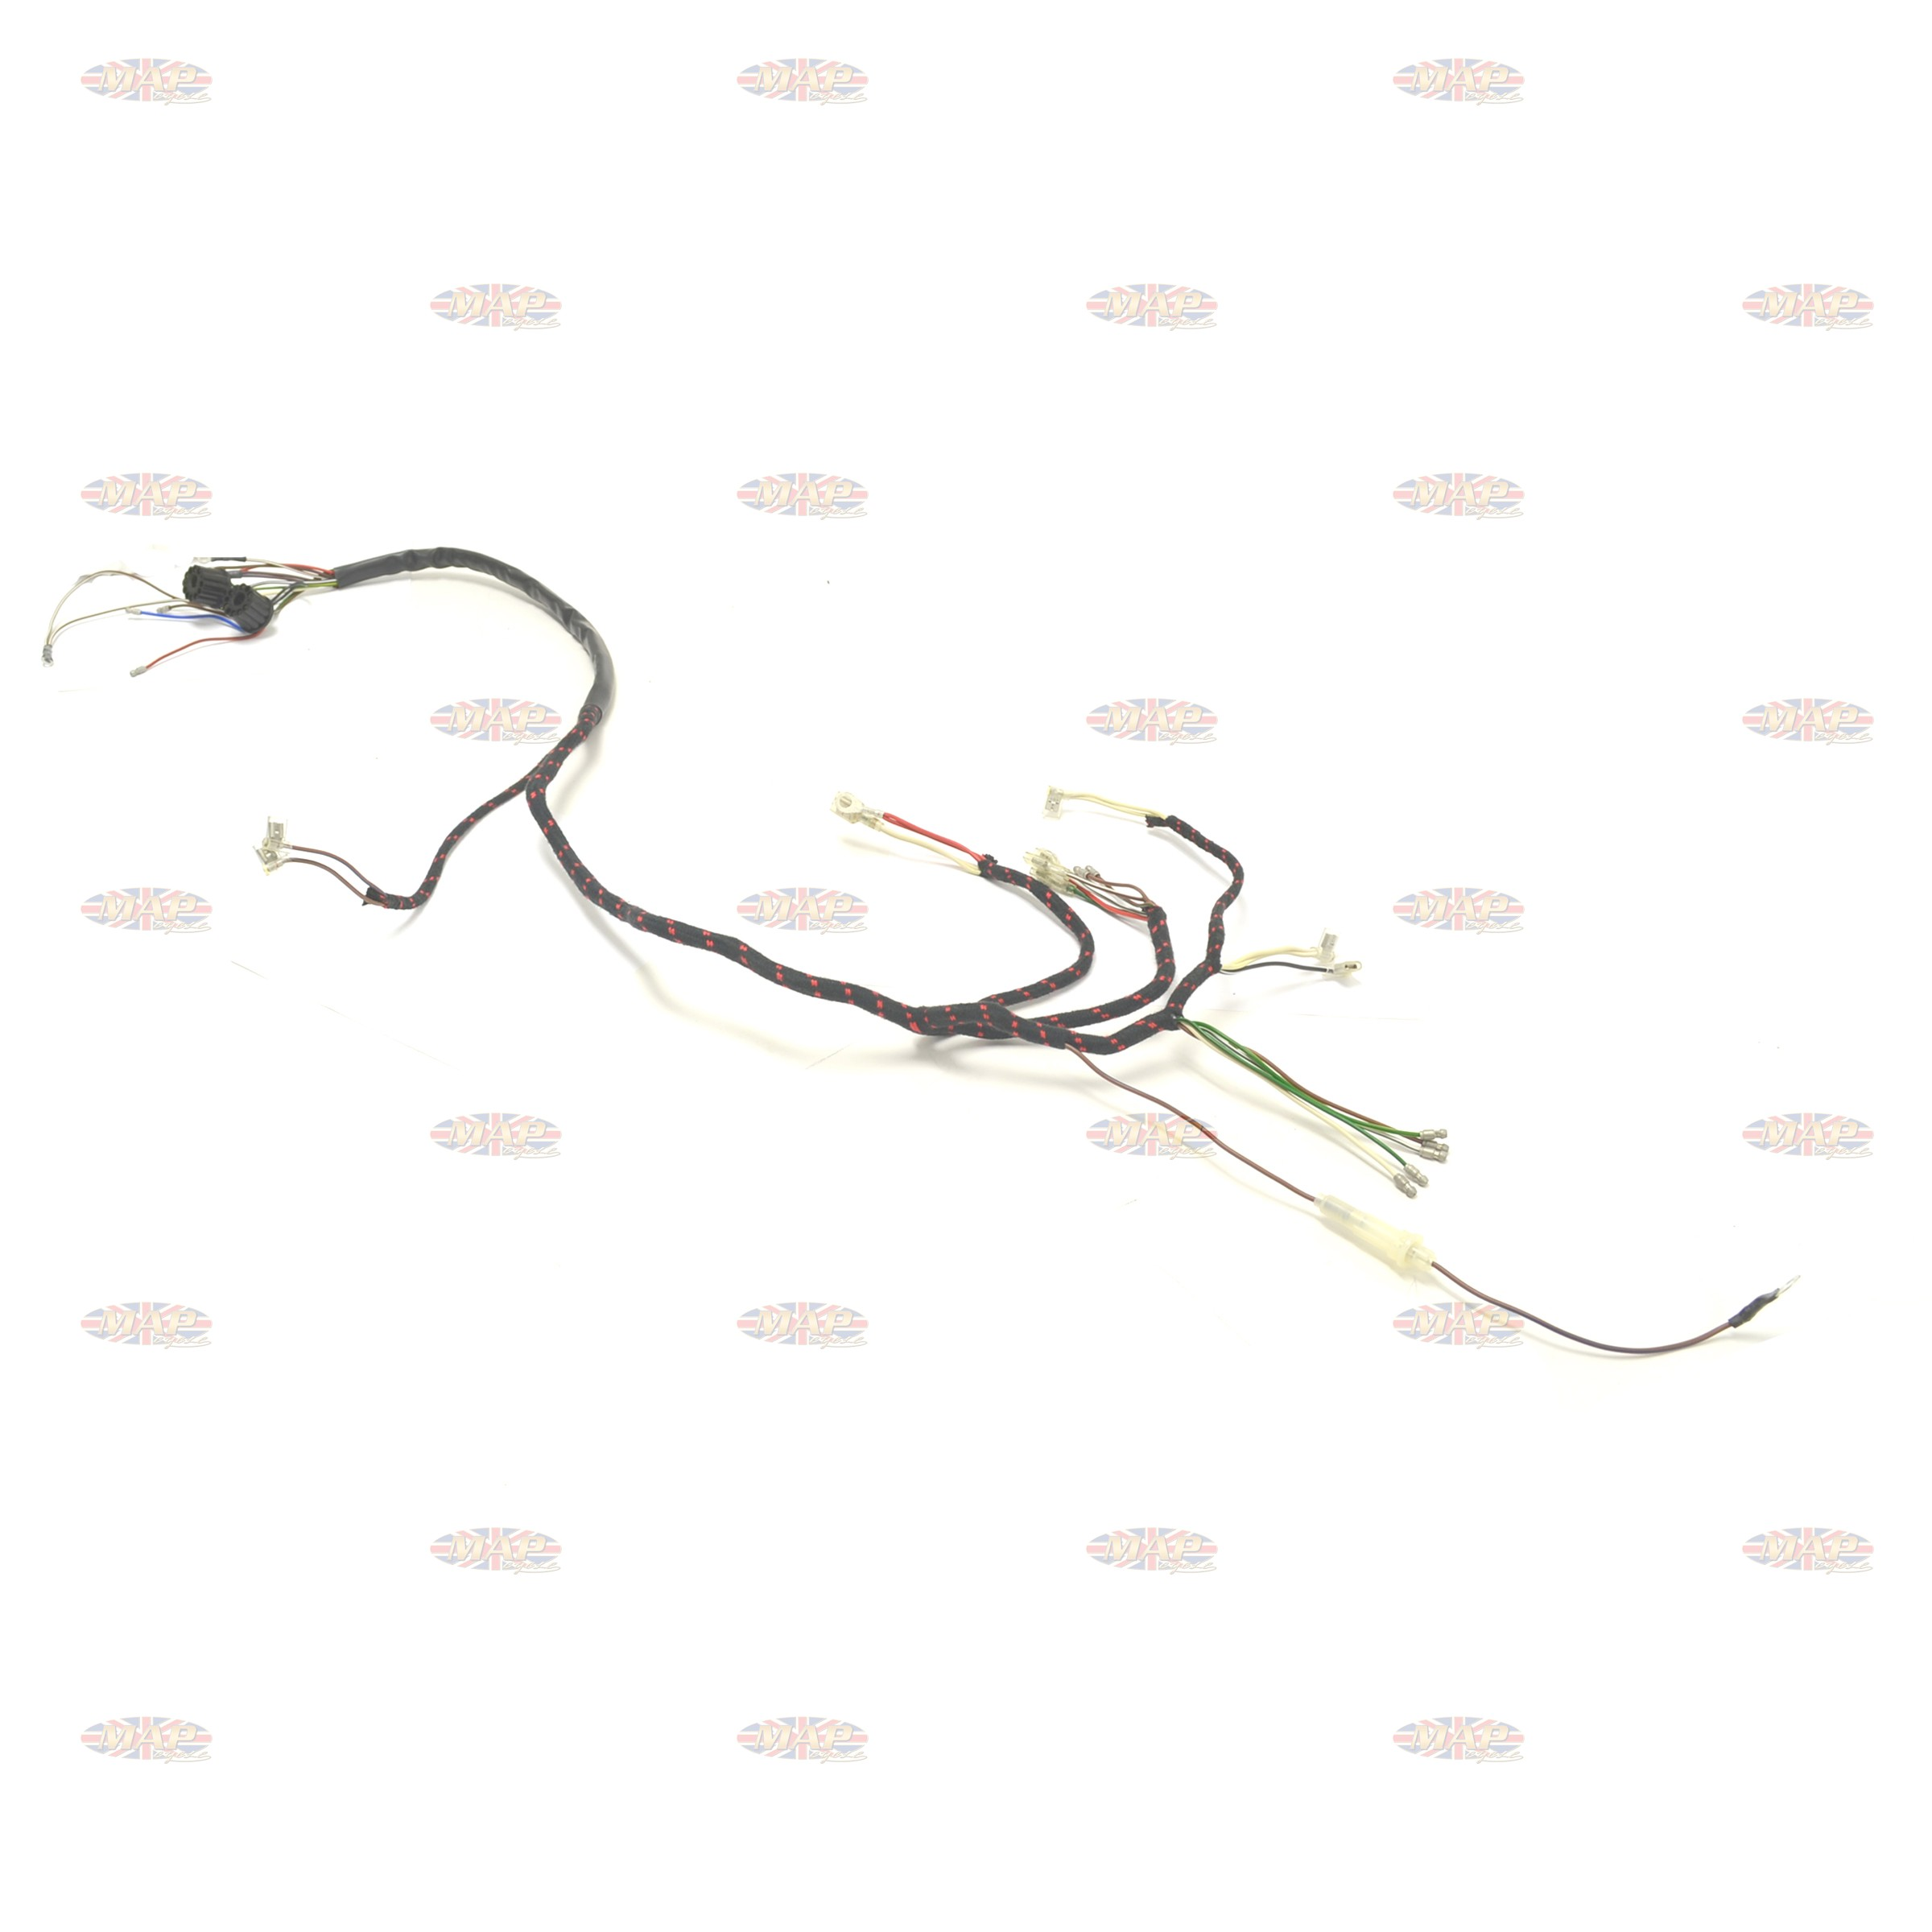 Bsa 67 A50 A65 Uk Made 12 Volt Wiring Harness